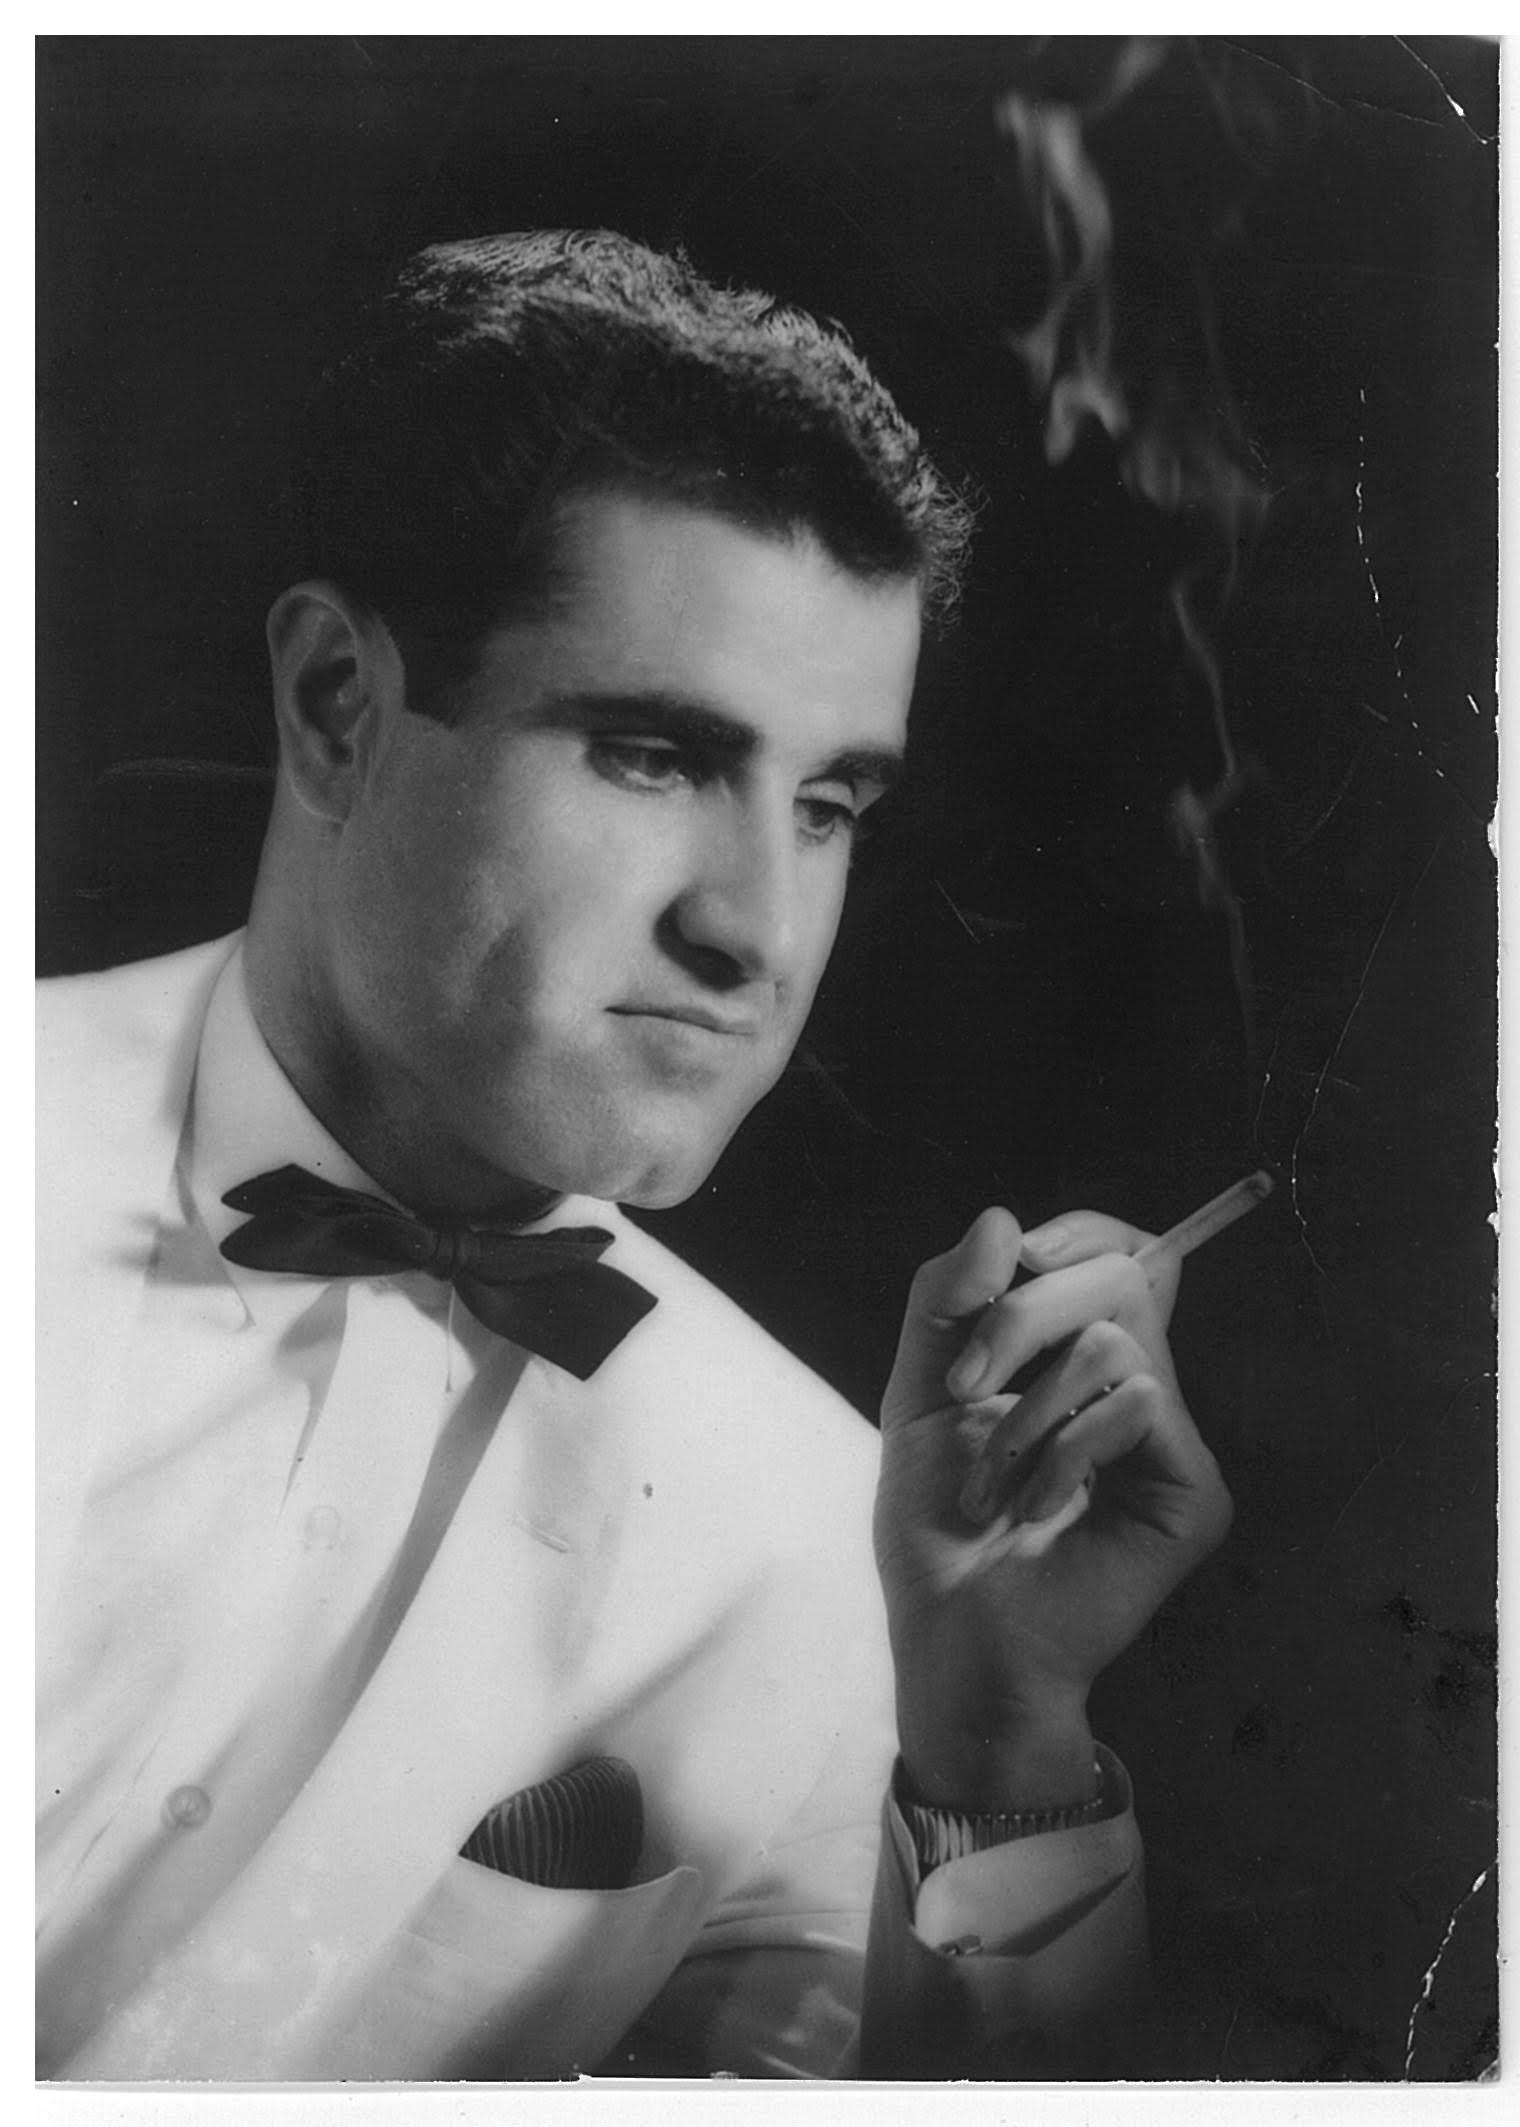 A young Eddy Haymour